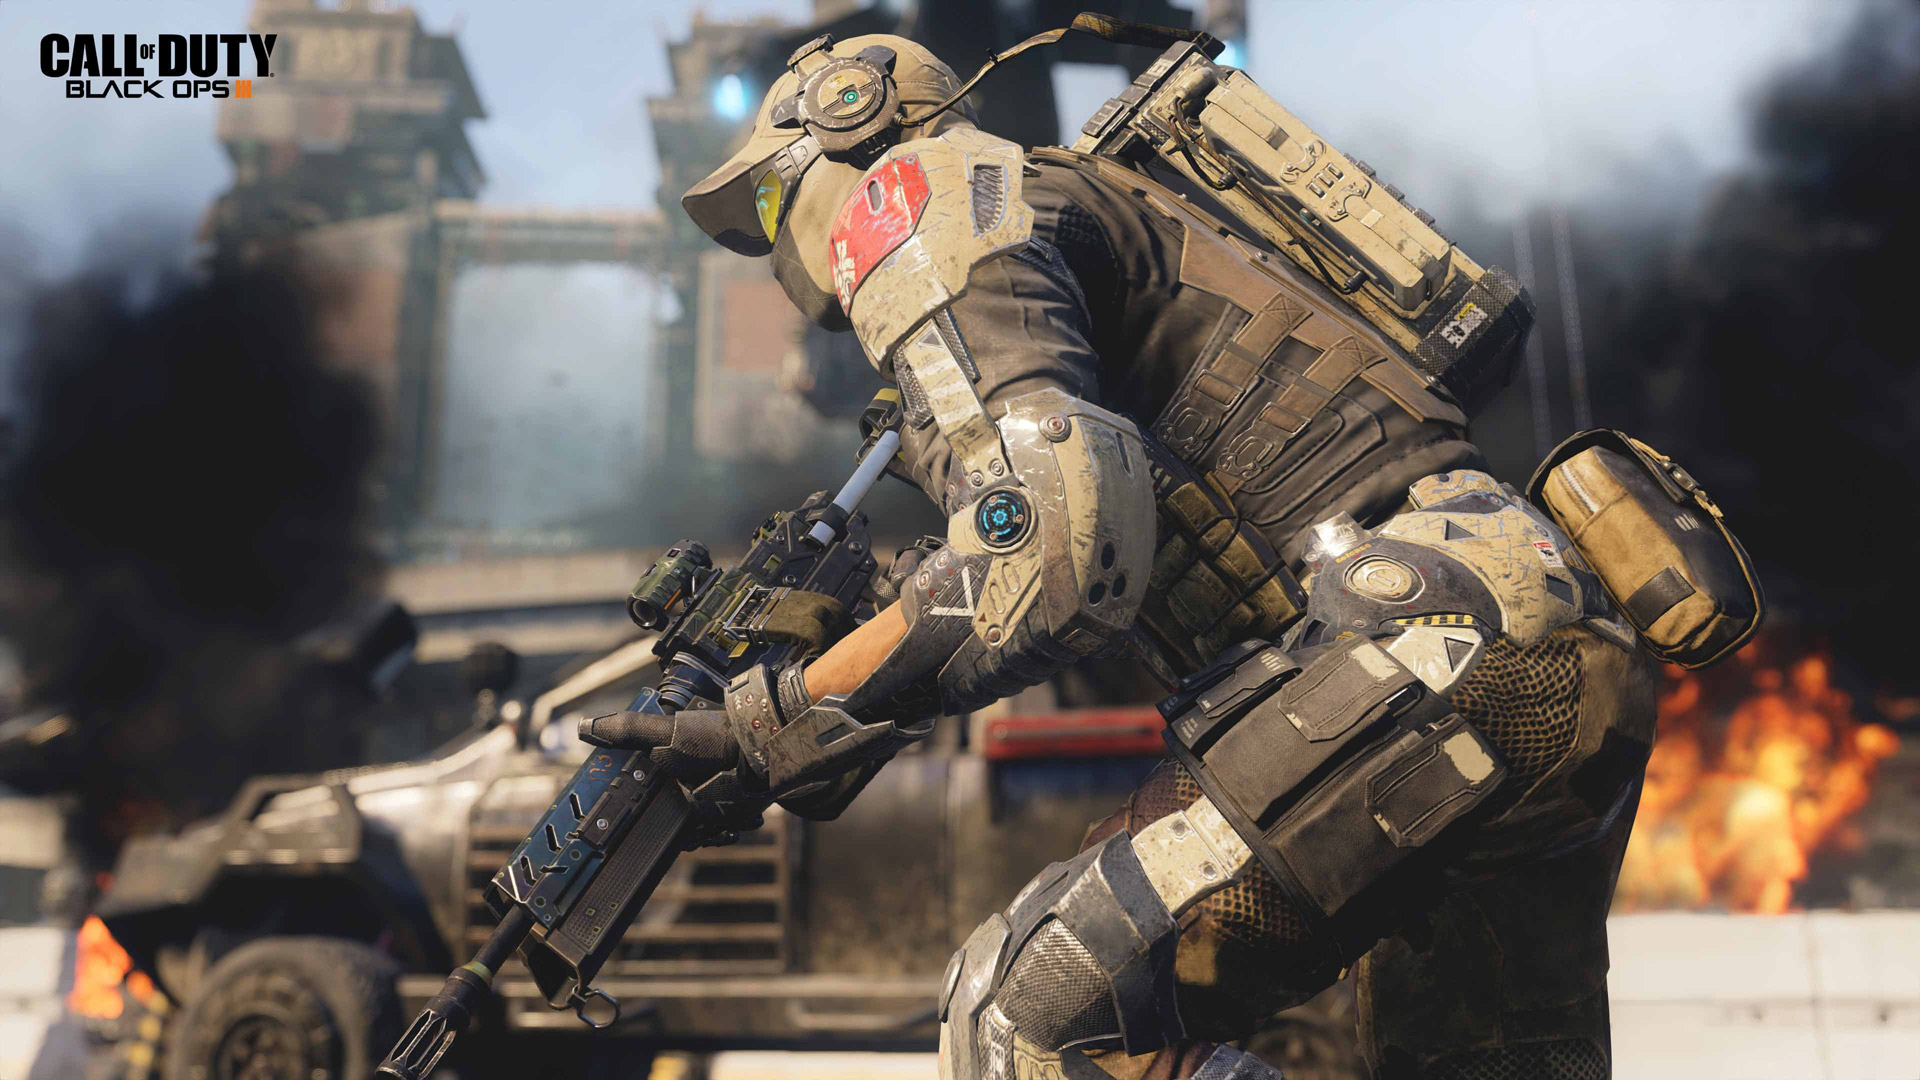 Call Of Duty Black Ops 3 Wallpaper 19